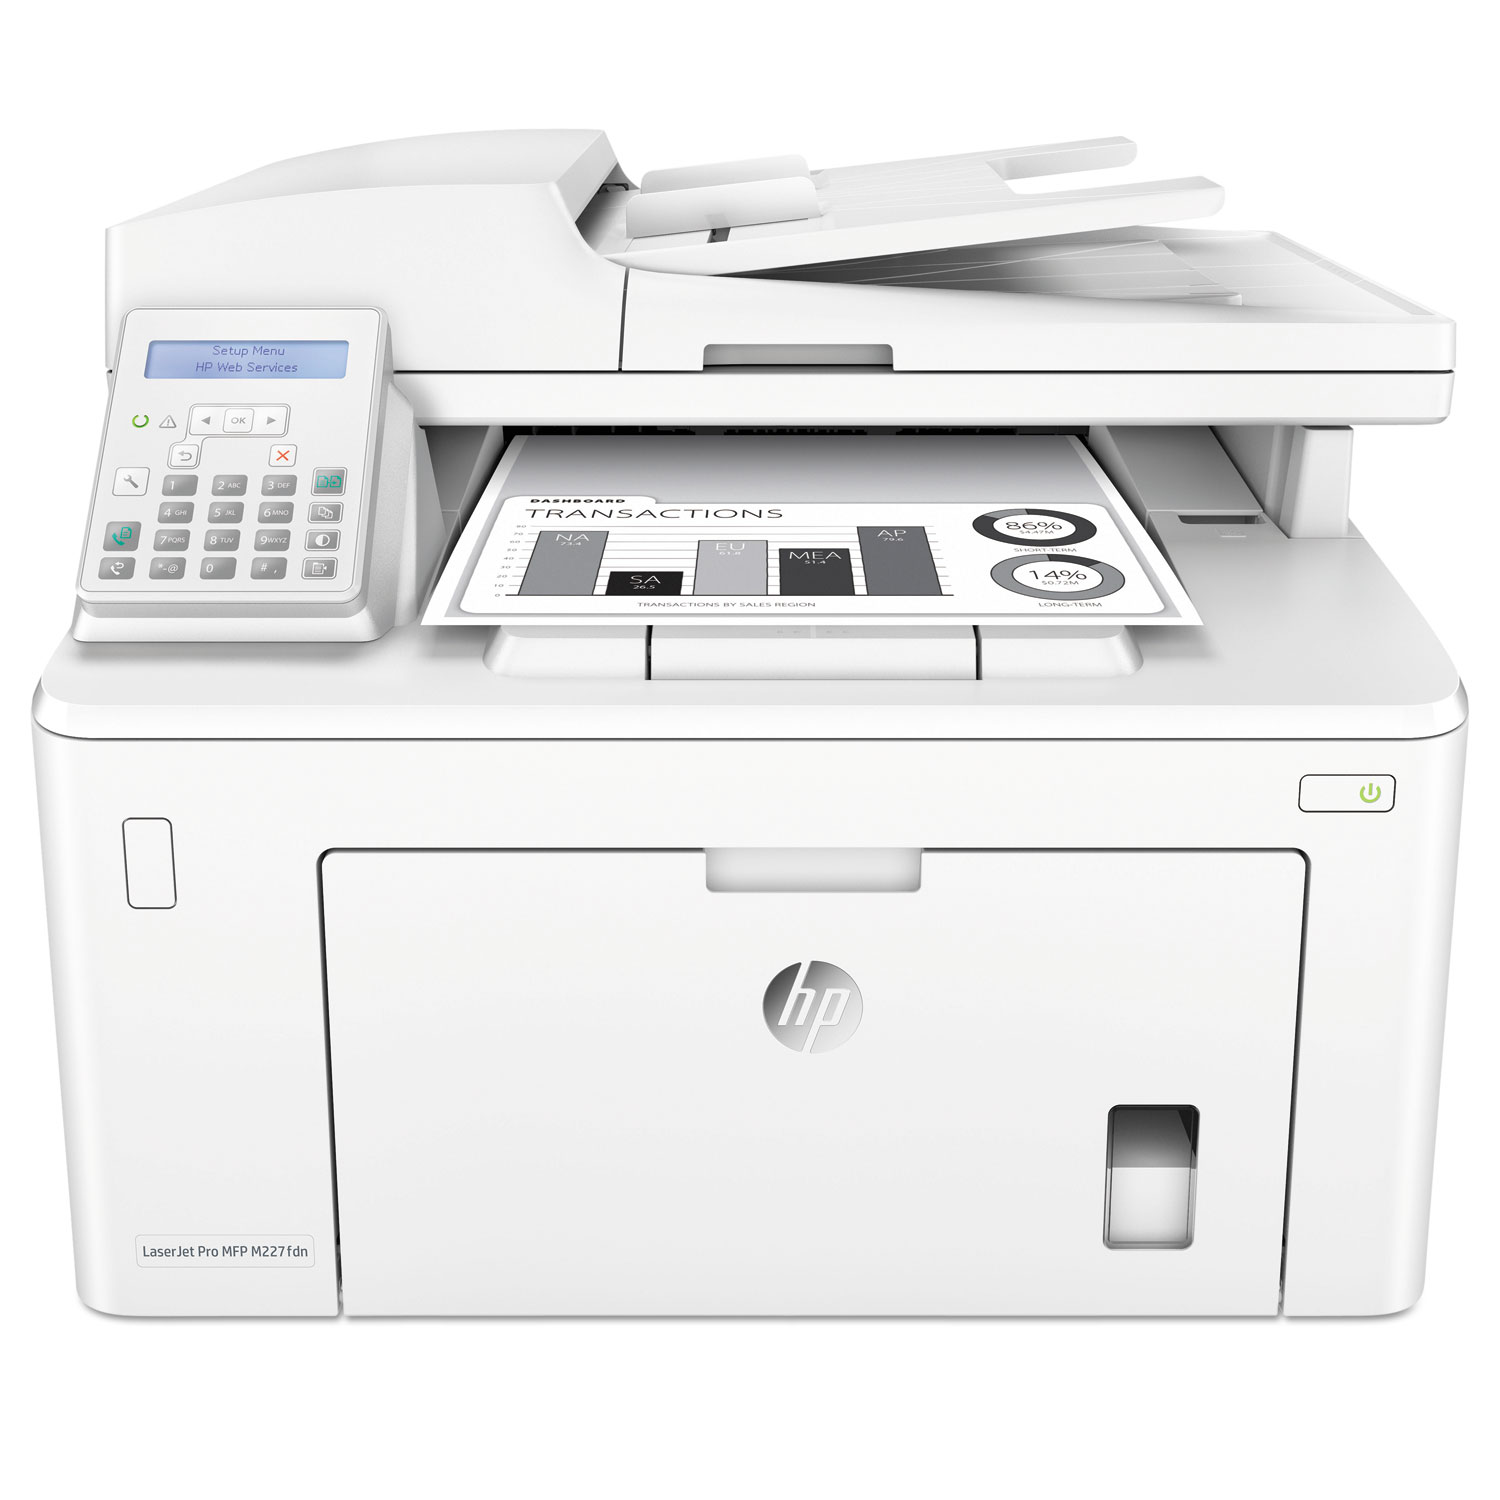 LaserJet Pro MFP M227fdn Multifunction Printer, Copy/Fax/Print/Scan